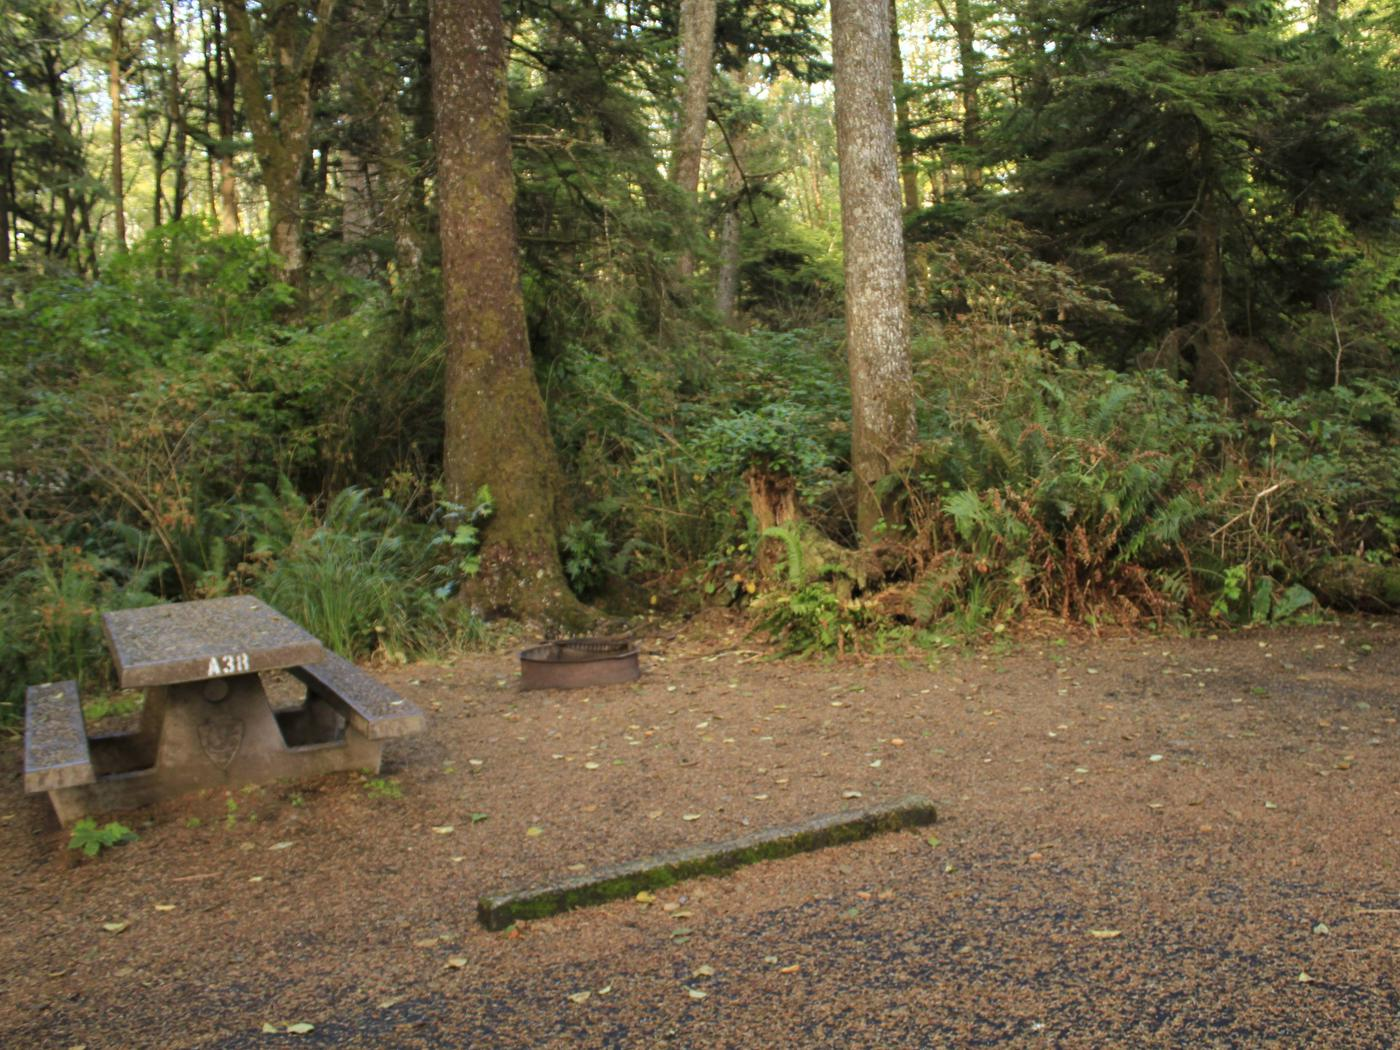 Picture of campsite with picnic table. Campsite A38